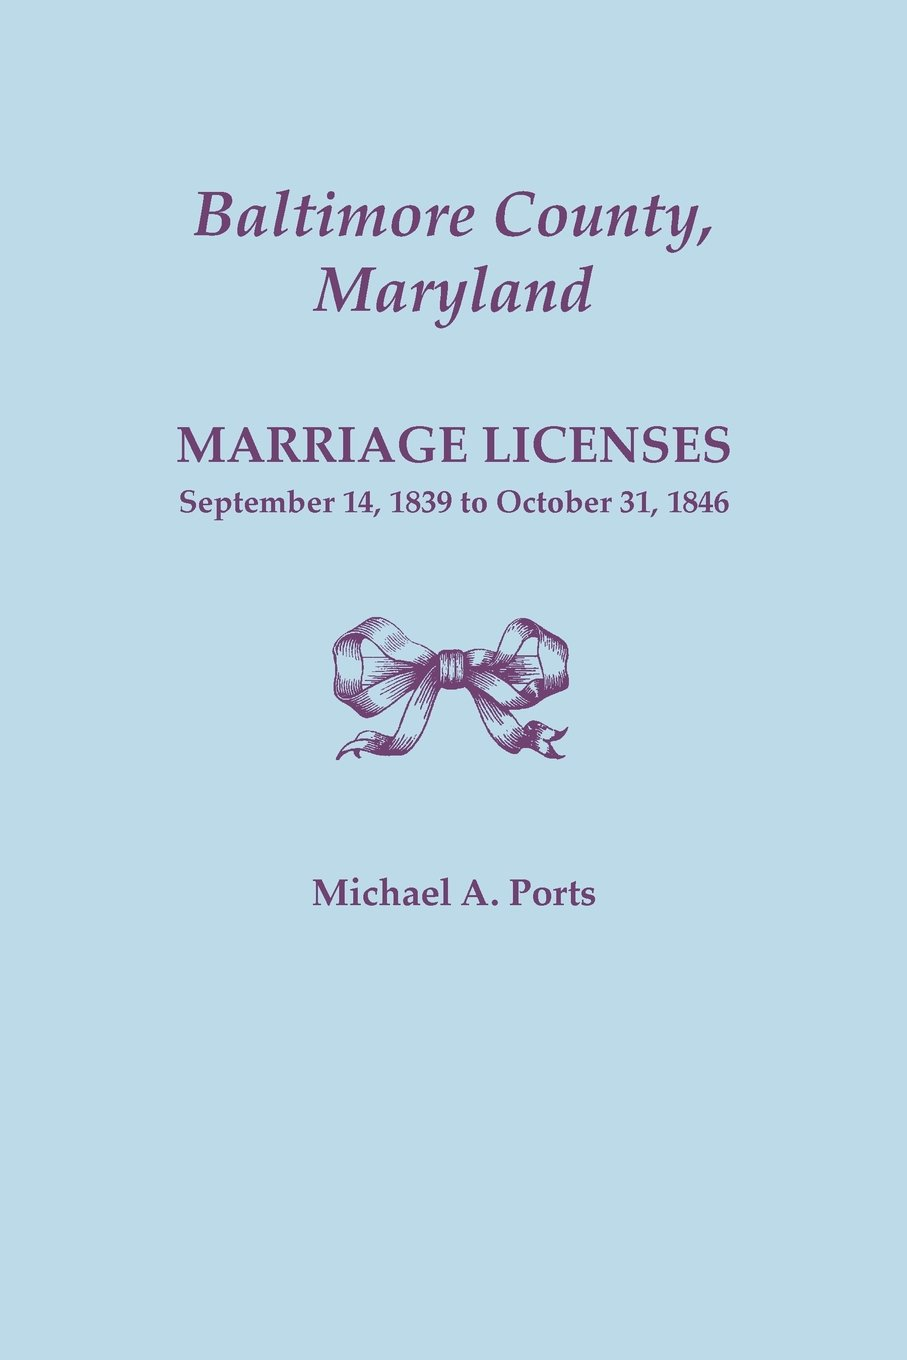 Download Baltimore County, Maryland, Marriage Licenses: September 14, 1839 to October 31, 1846 PDF